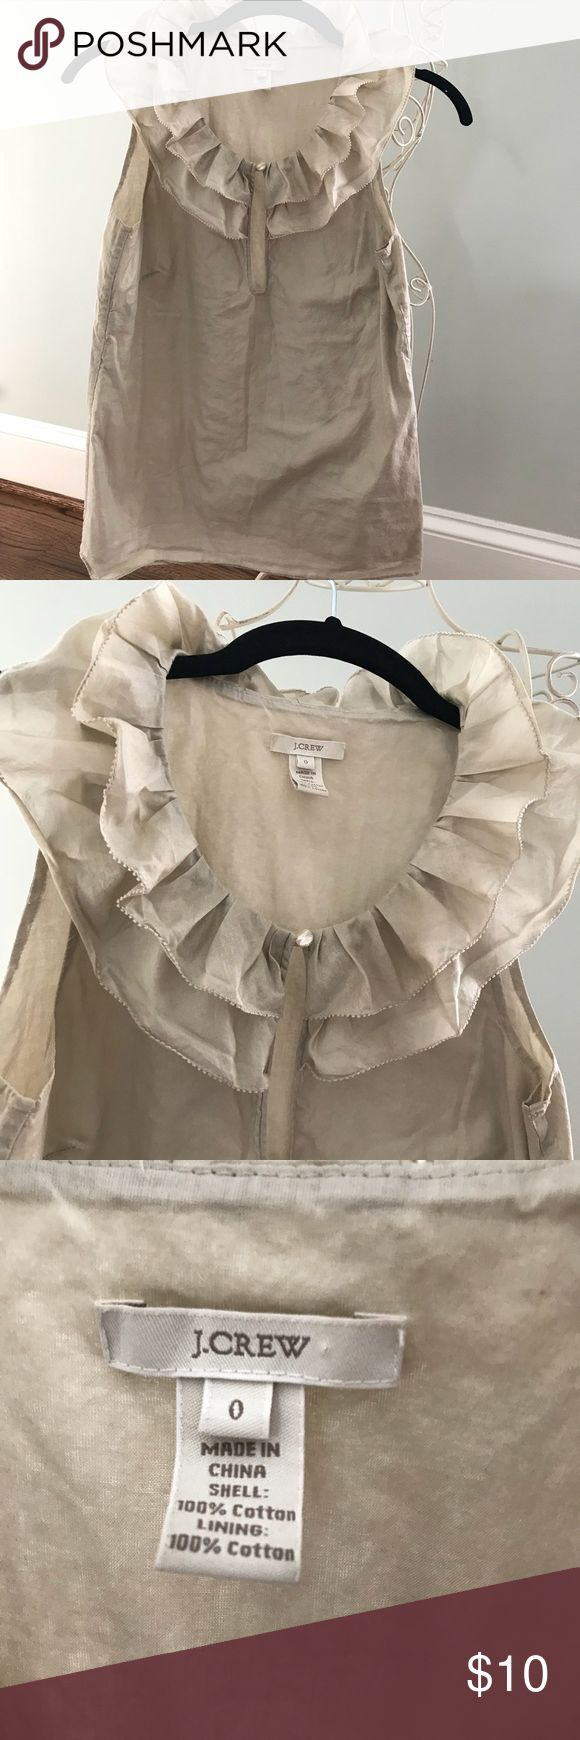 J. Crew Size 0 Double Ruffle Cotton Blouse Love this top! Double ruffle around neckline on front and back. Sleeveless. Beige color with a platinum golden shimmer. 100% Cotton for shell and lining. Keyhole at front with mother-of-pearl looking button. J. Crew Tops Blouses